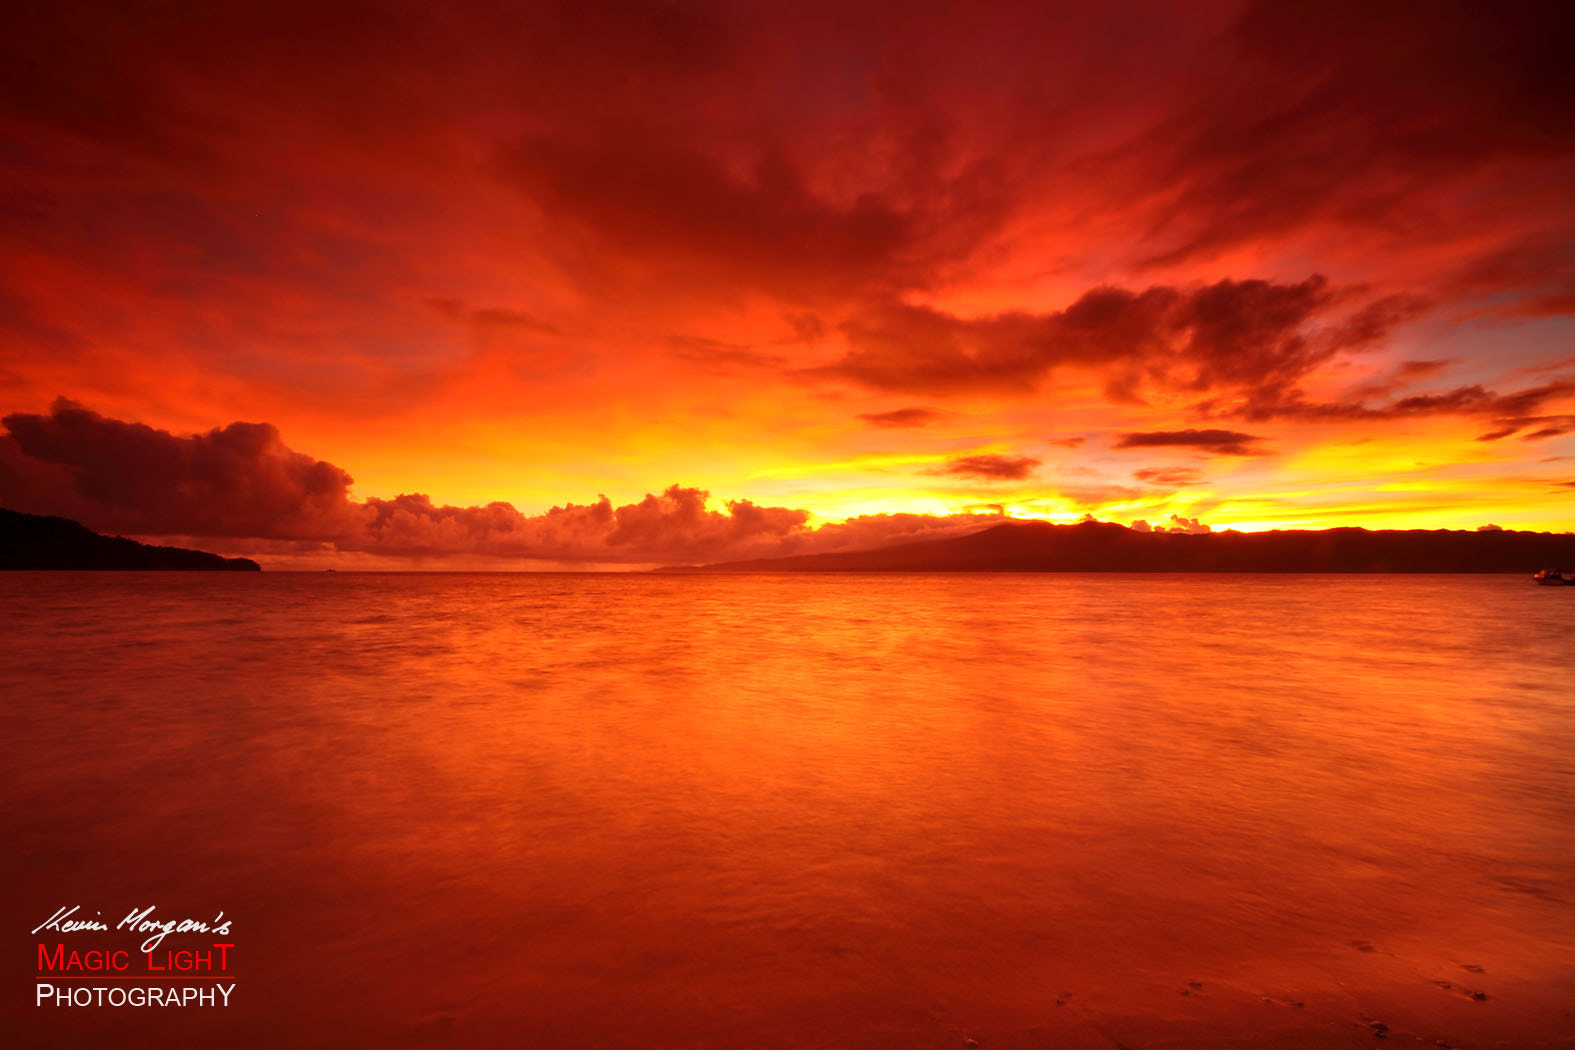 Photograph Skies of Flame by Kevin Morgan on 500px